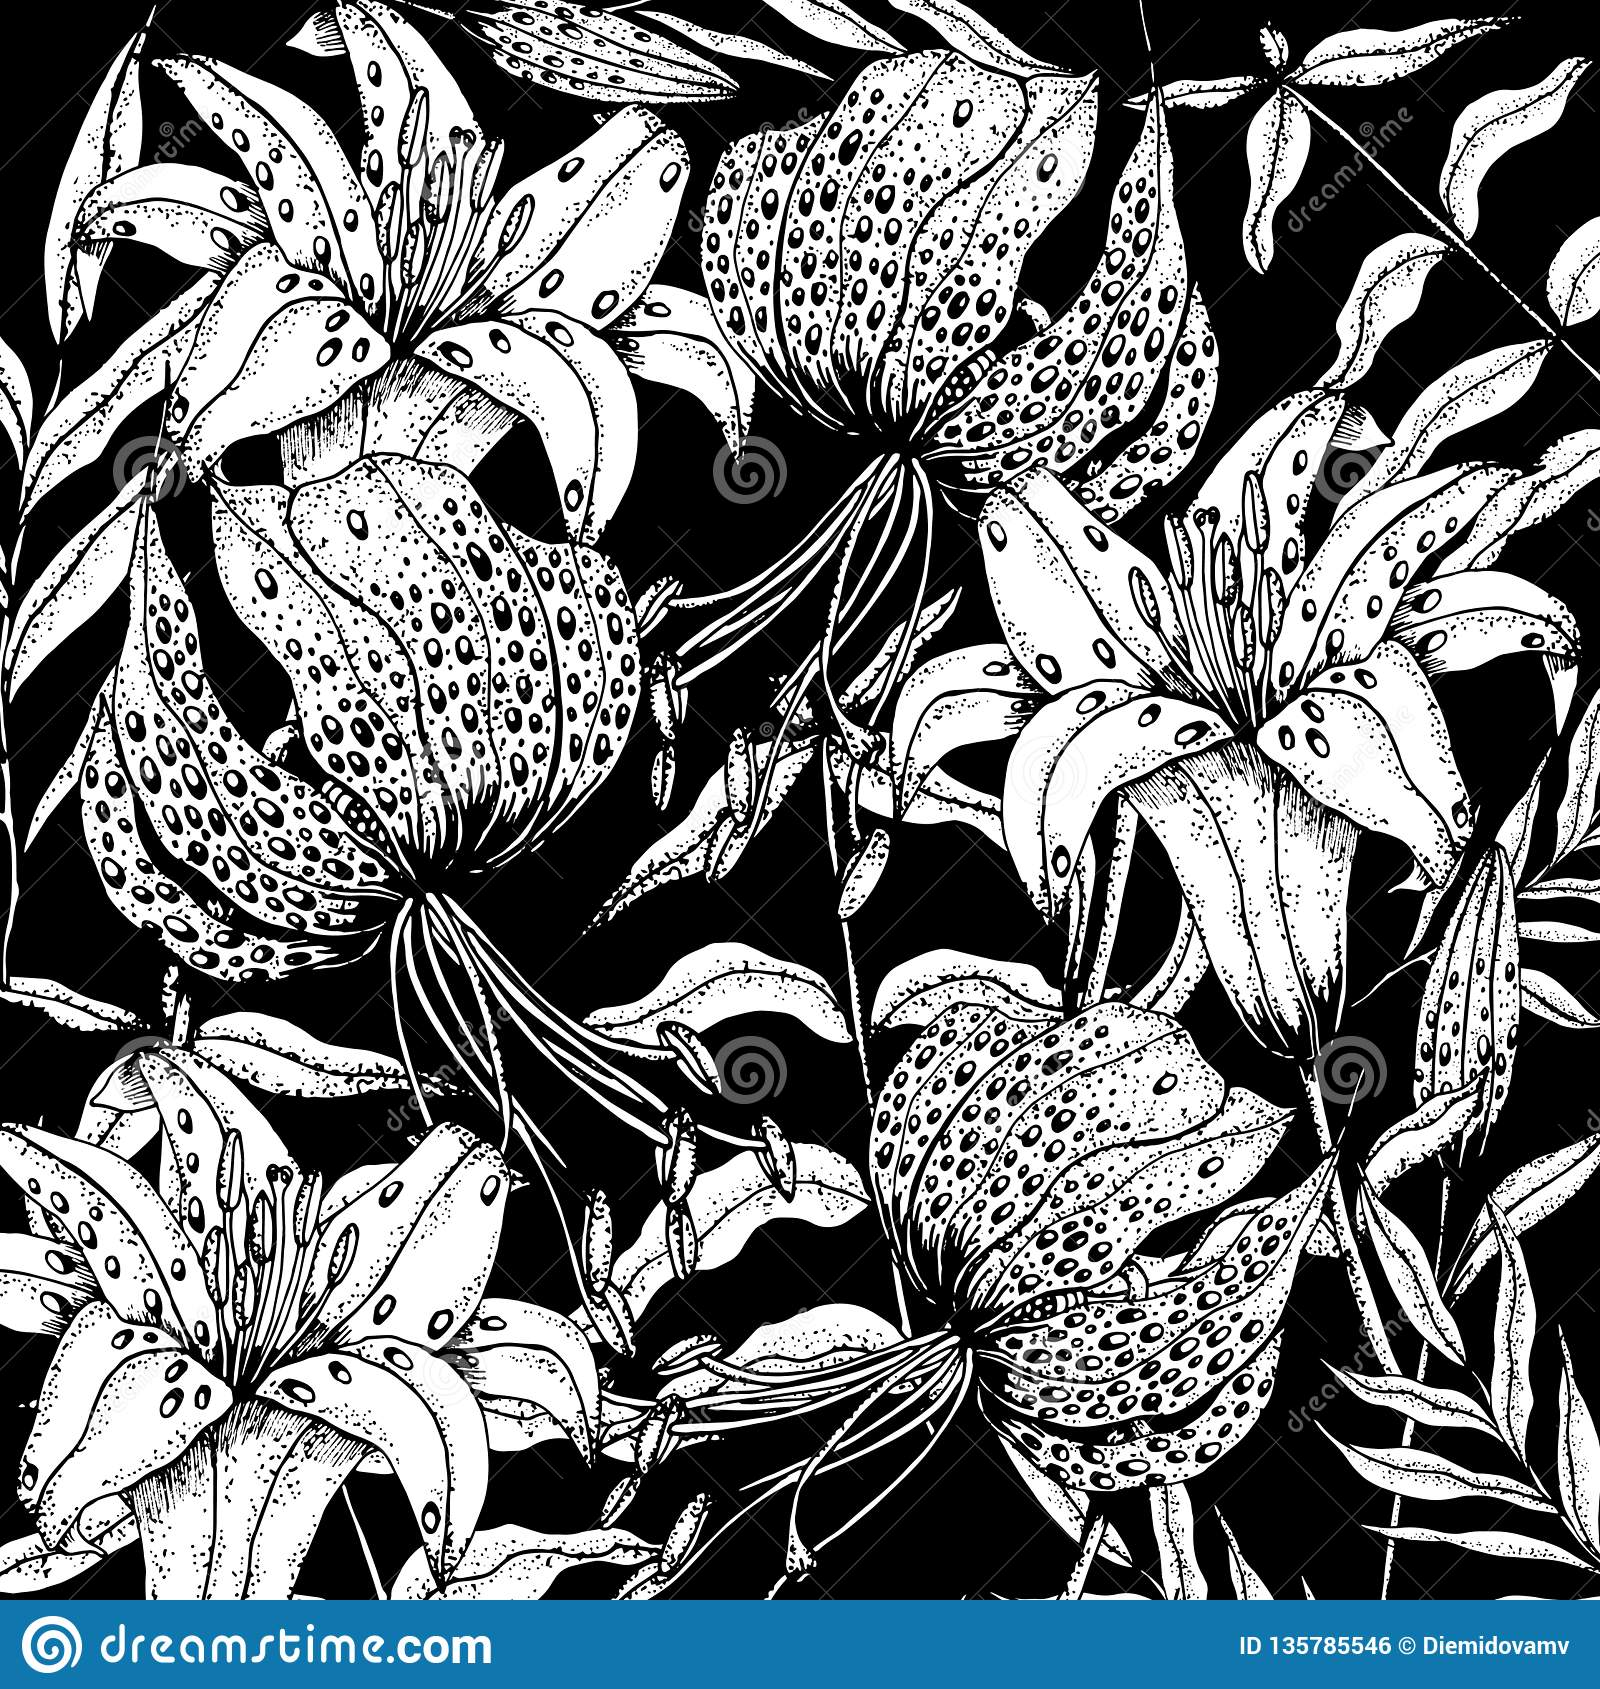 Doodle Floral Lily Background In Vector With Doodles Black And White